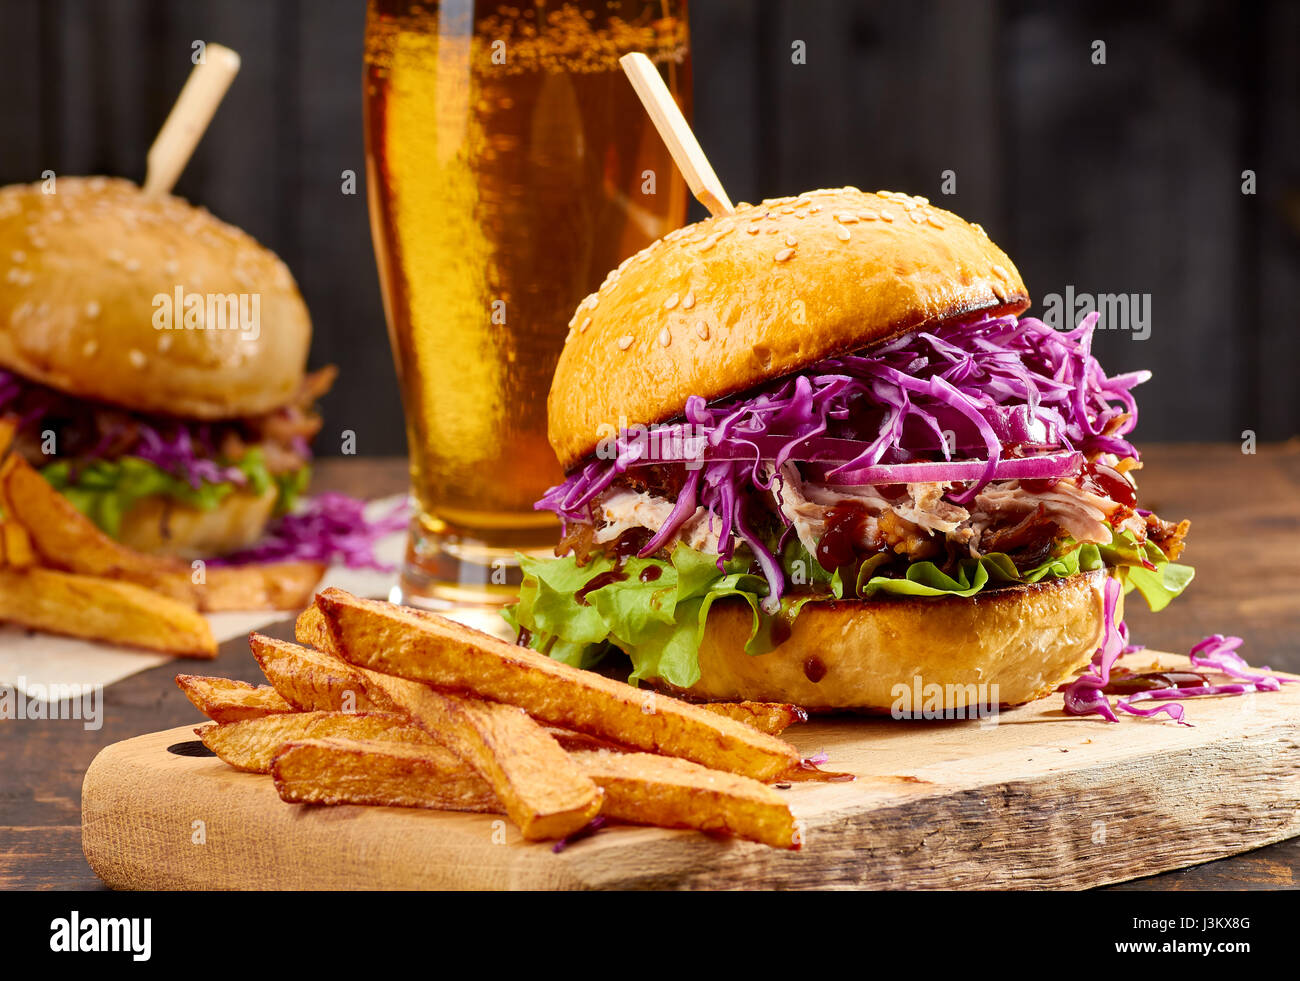 Two sandwiches with pulled pork, french fries and glass of beer on wooden background - Stock Image